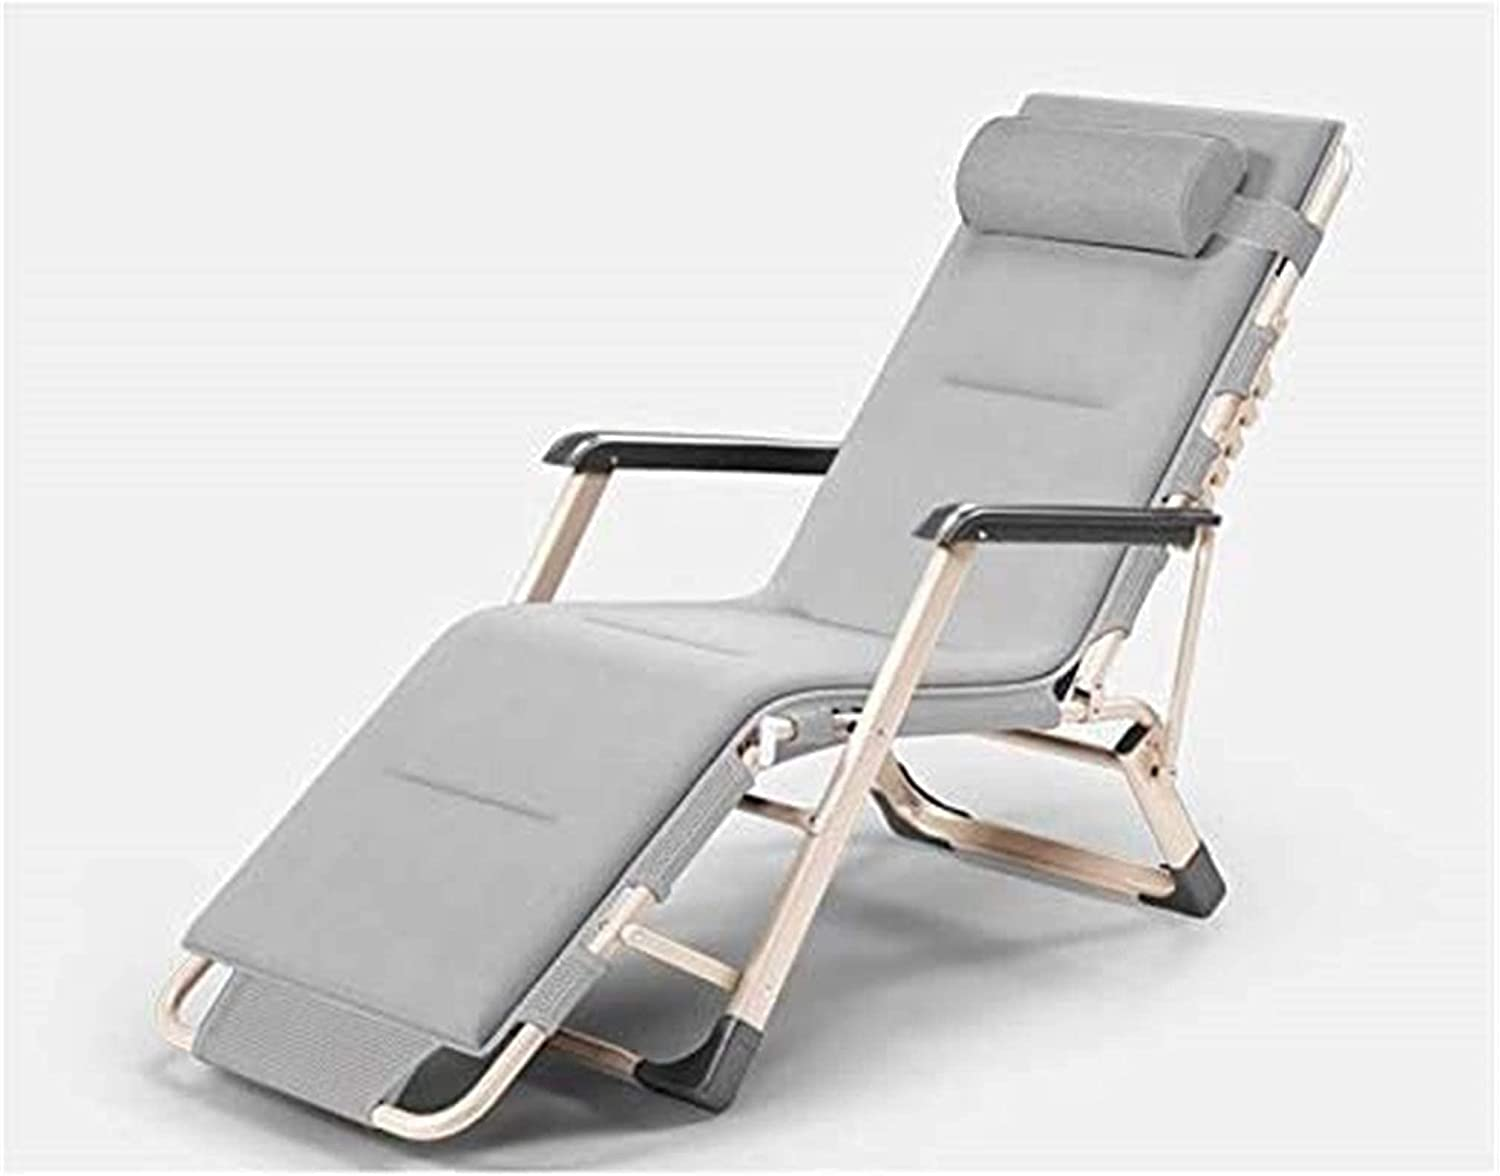 Patio Lounge Chairs Recliner Garden with Loungers and Recliners online shop List price